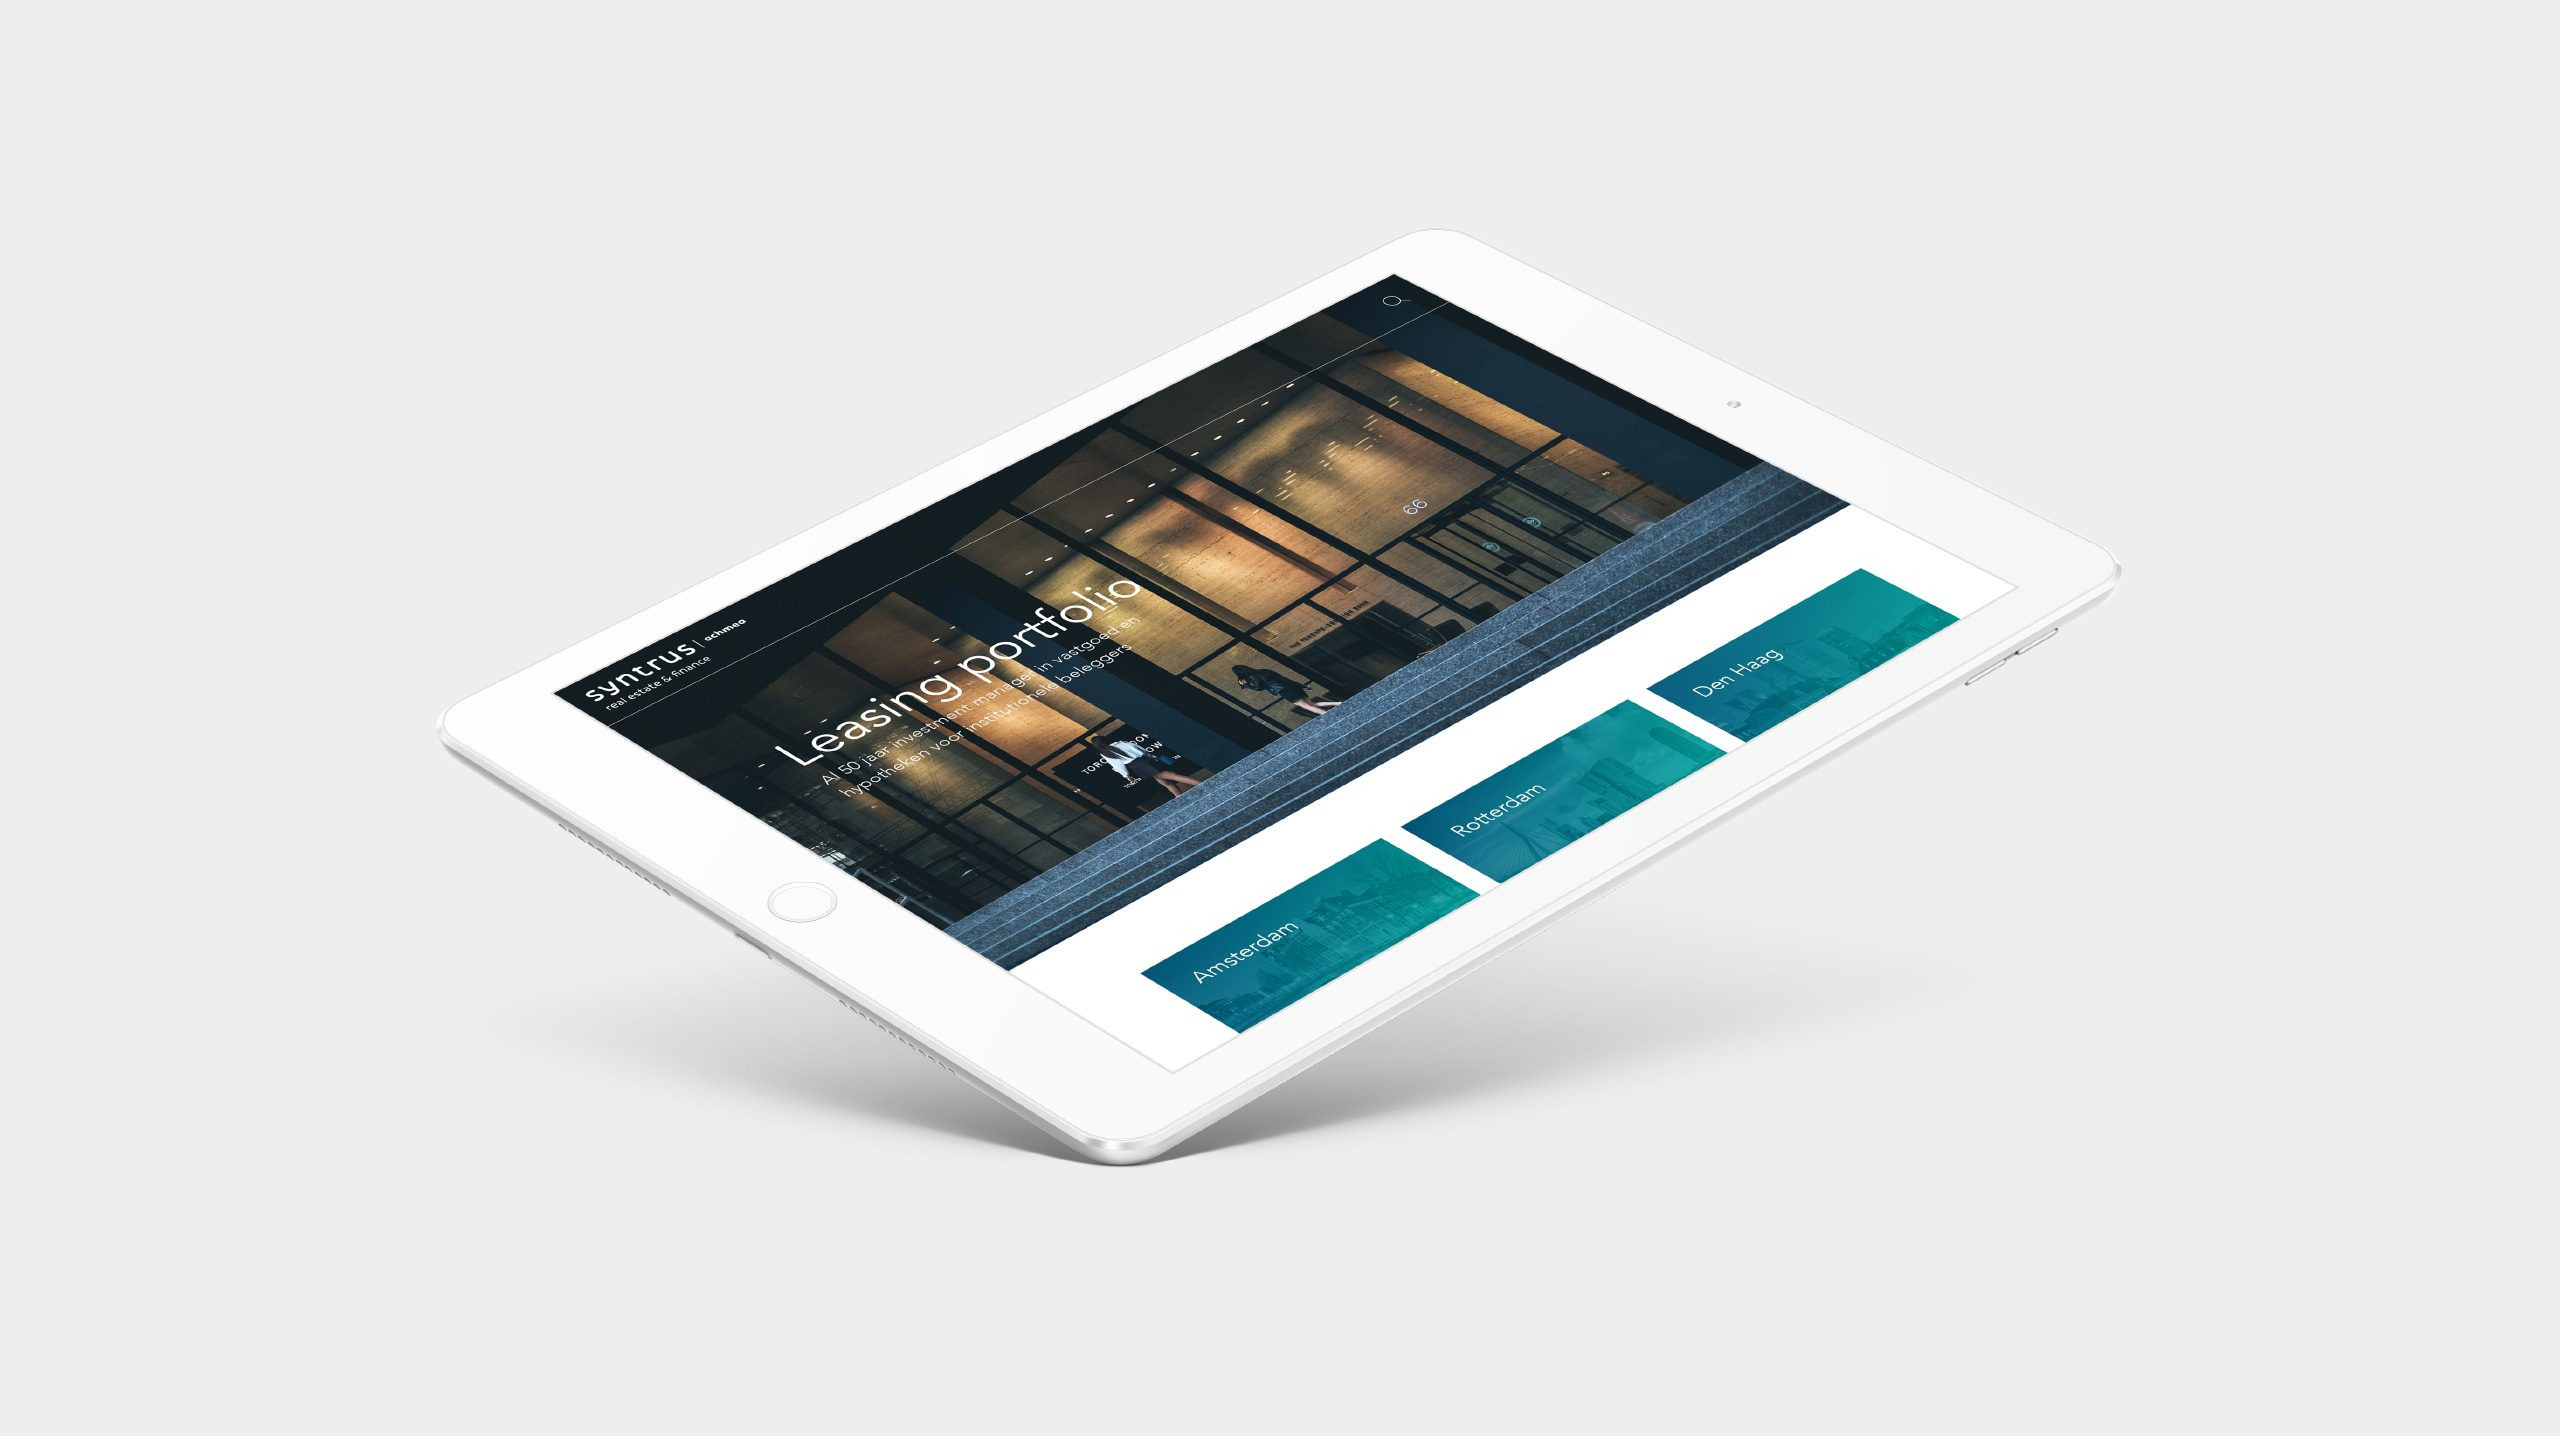 Syntrus Achmea App portfolio iPad – Dutchgiraffe | Digital Creatives